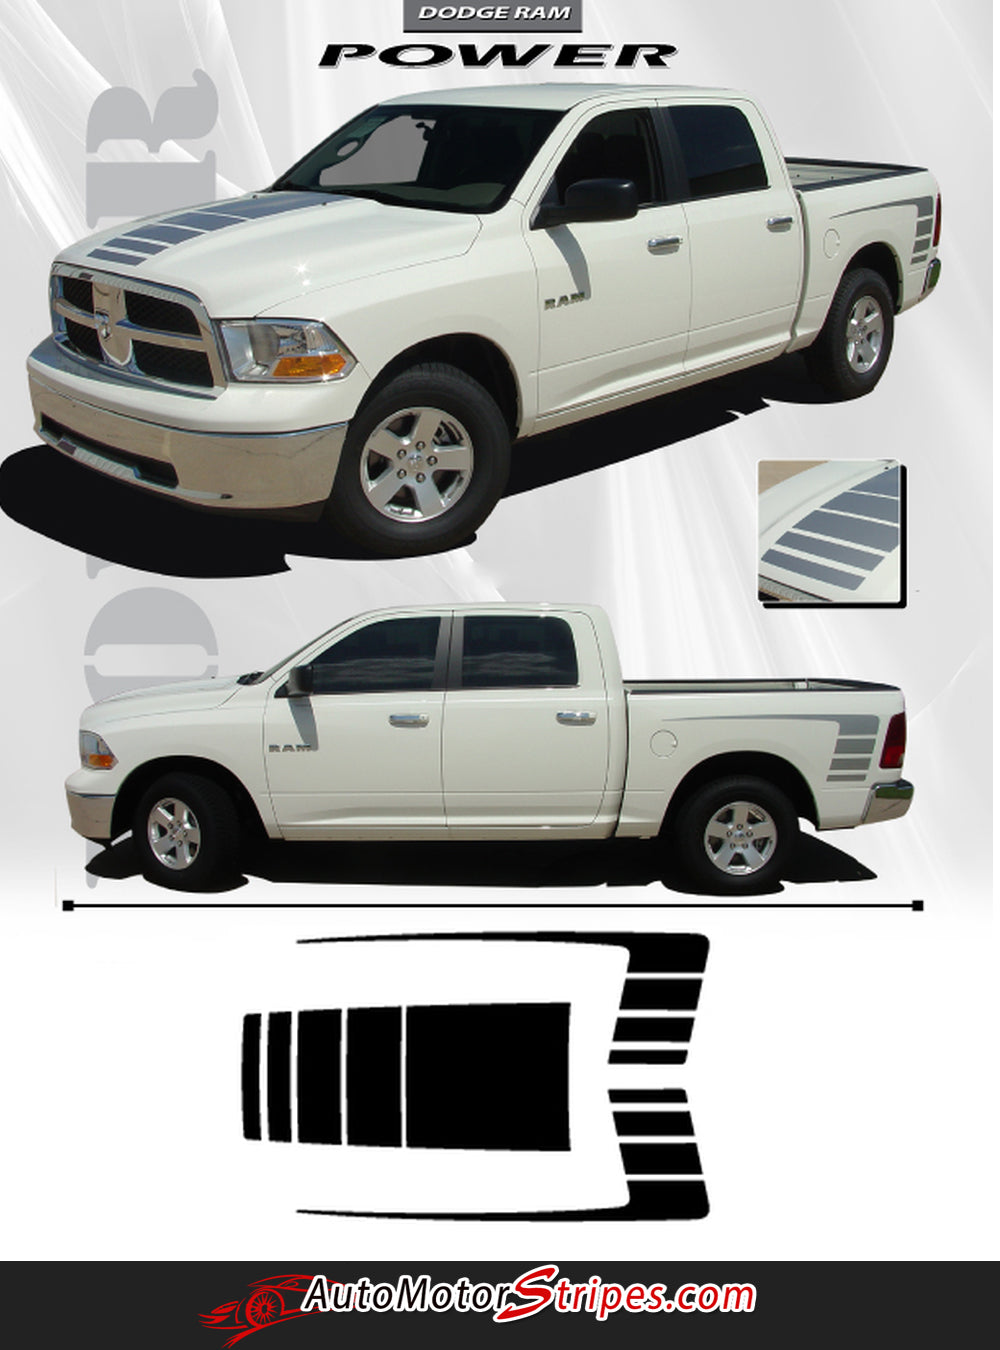 2009 2018 Dodge Ram Power Wagon Decals Hood Side Strobes 1500 2017 Truck And Rear Bed Vinyl